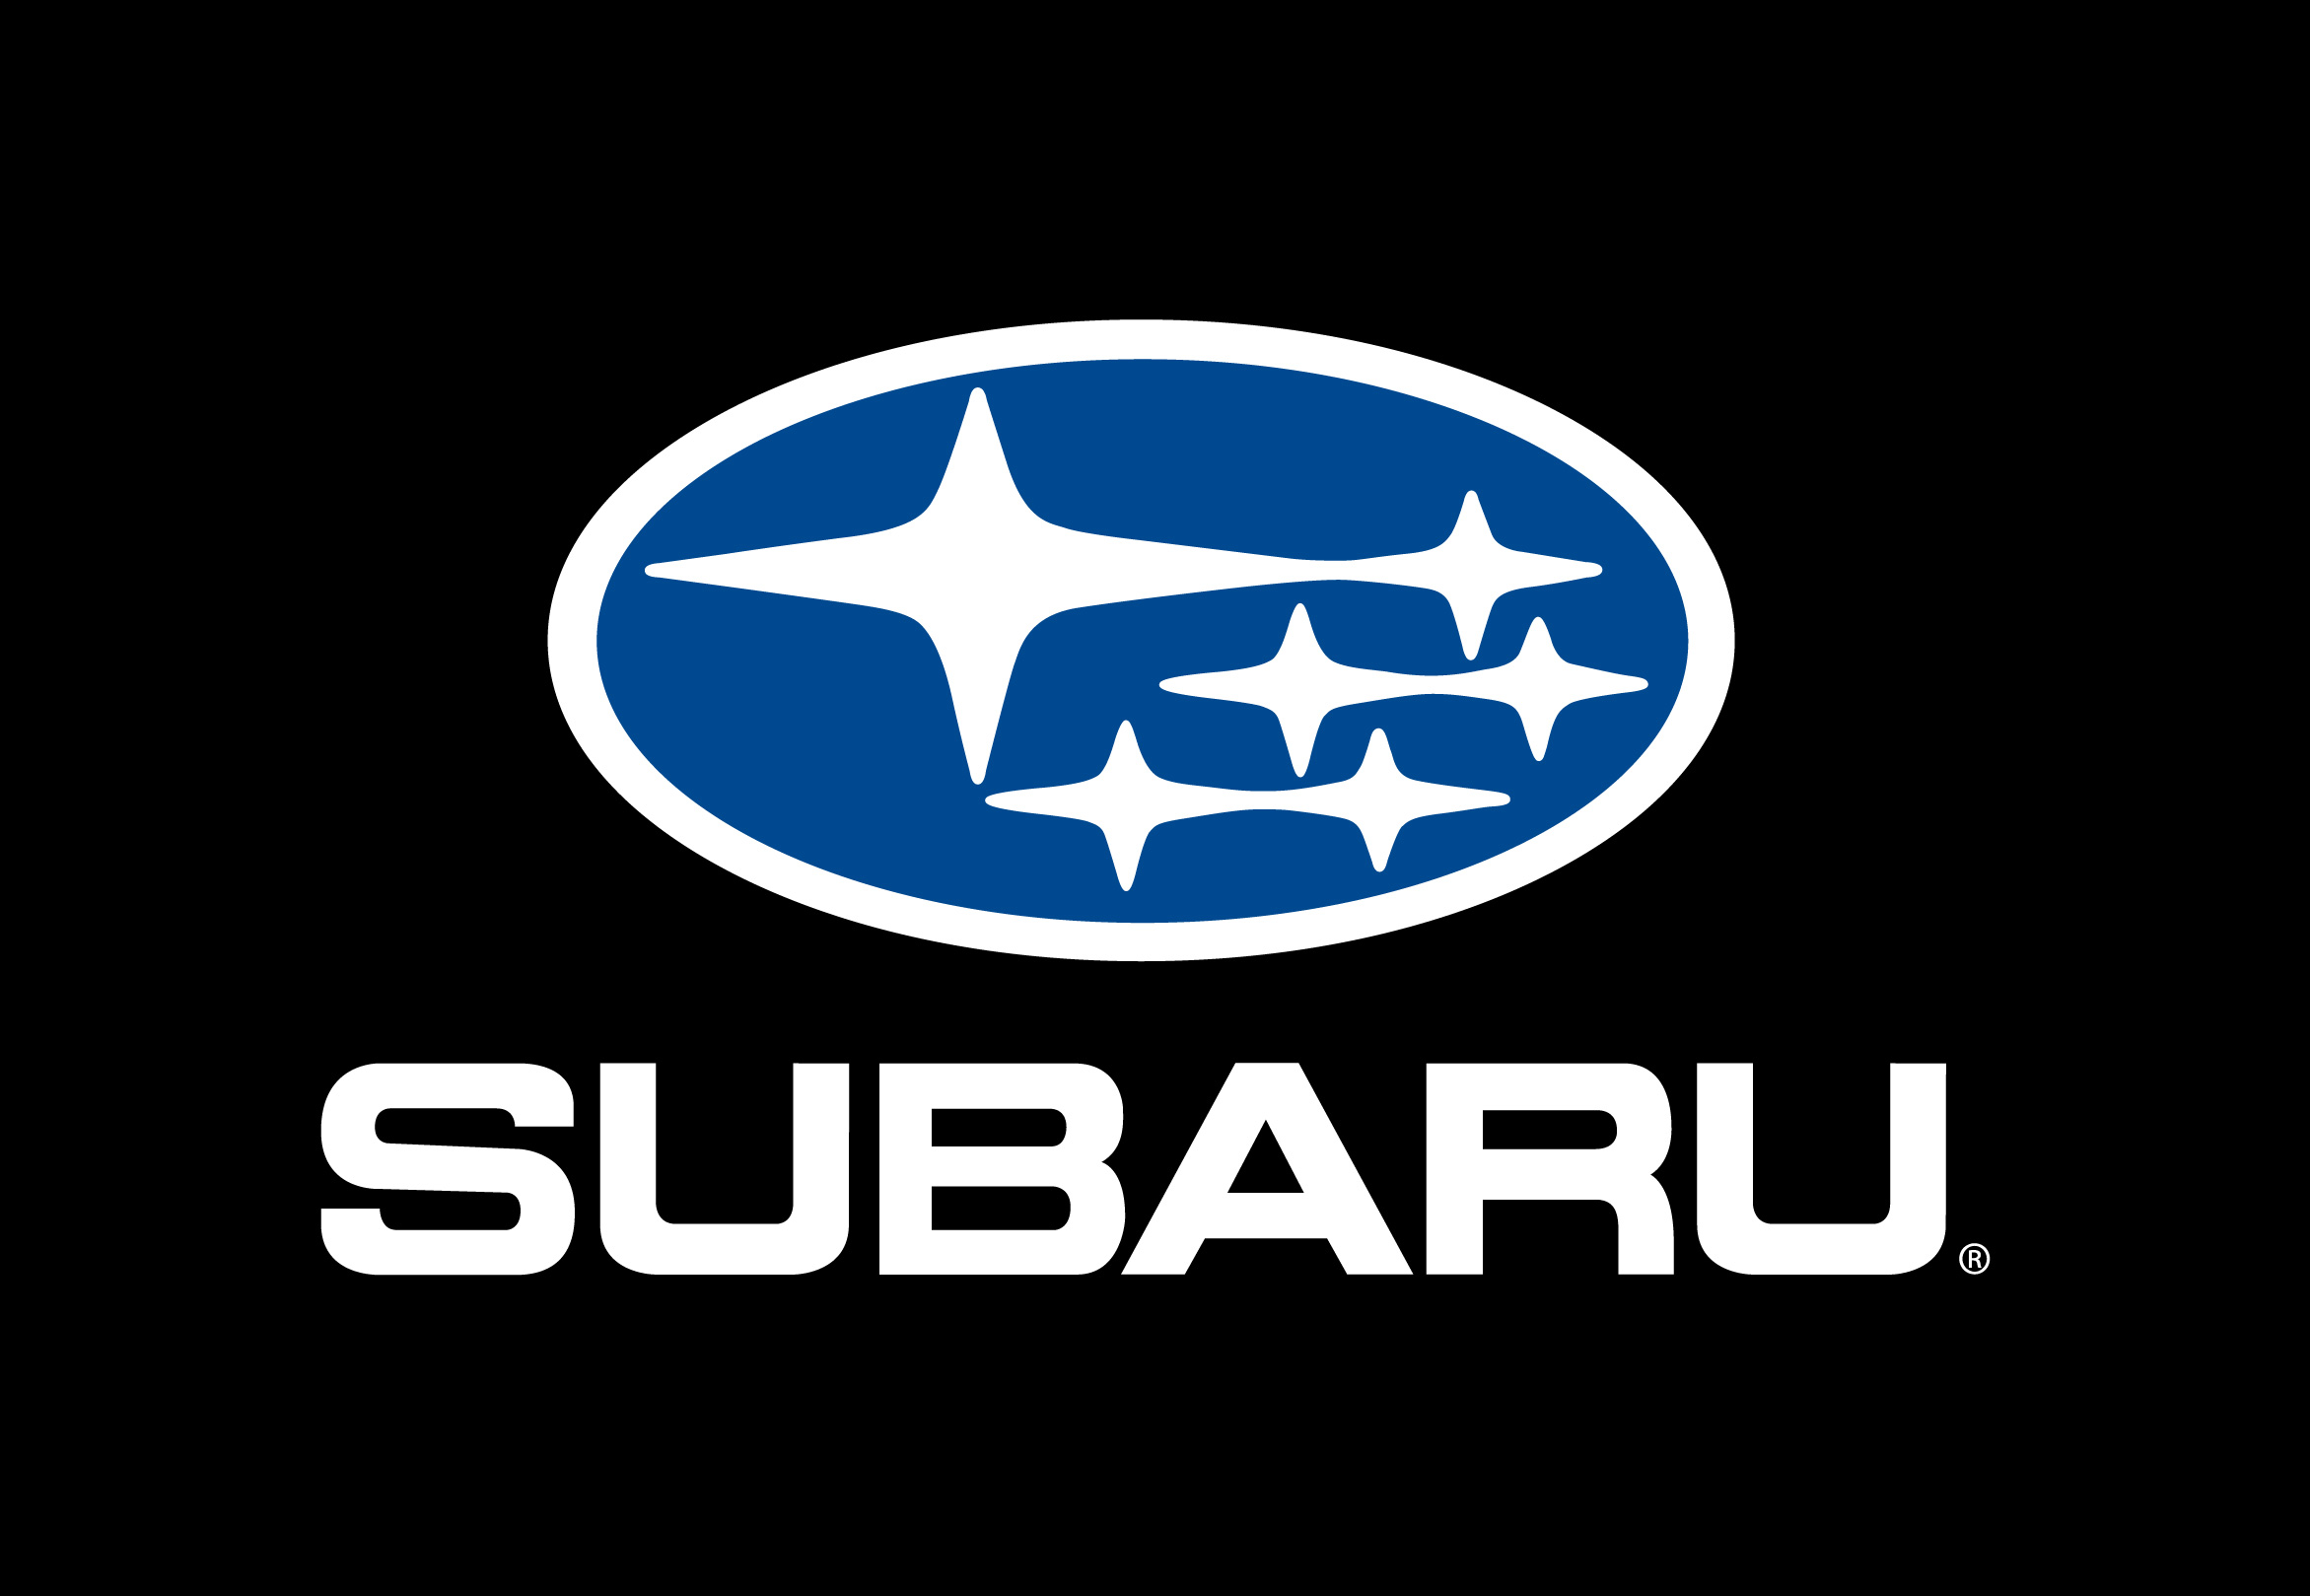 Replacement Auto Key No Spare Subaru